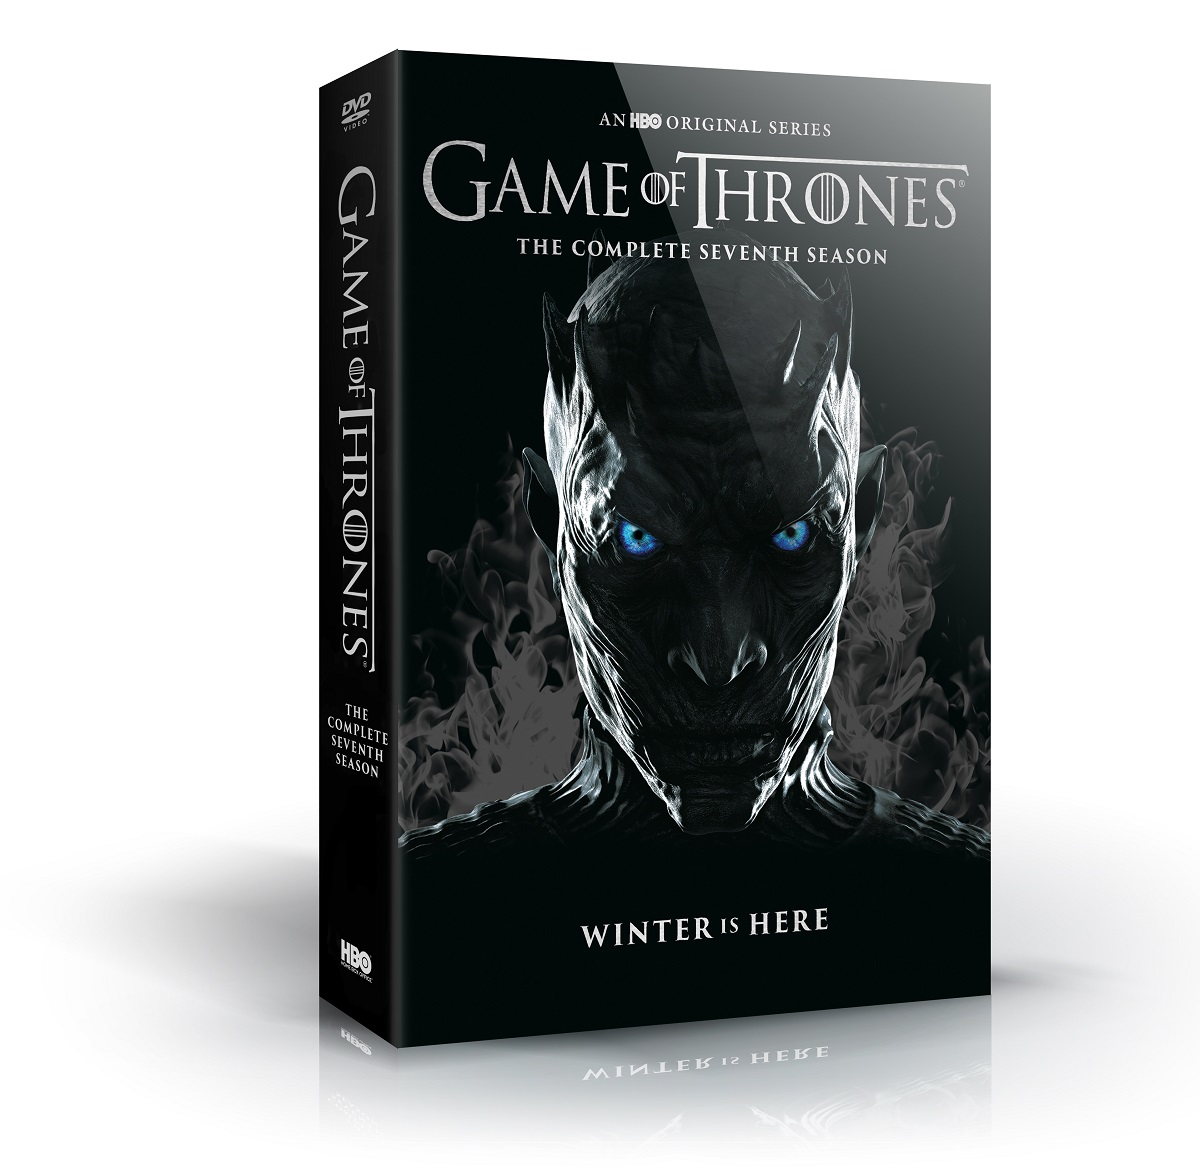 Warriors The New Prophecy Set The Complete Second Series: GAME OF THRONES Season 7 Arrives On Blu-ray & DVD December